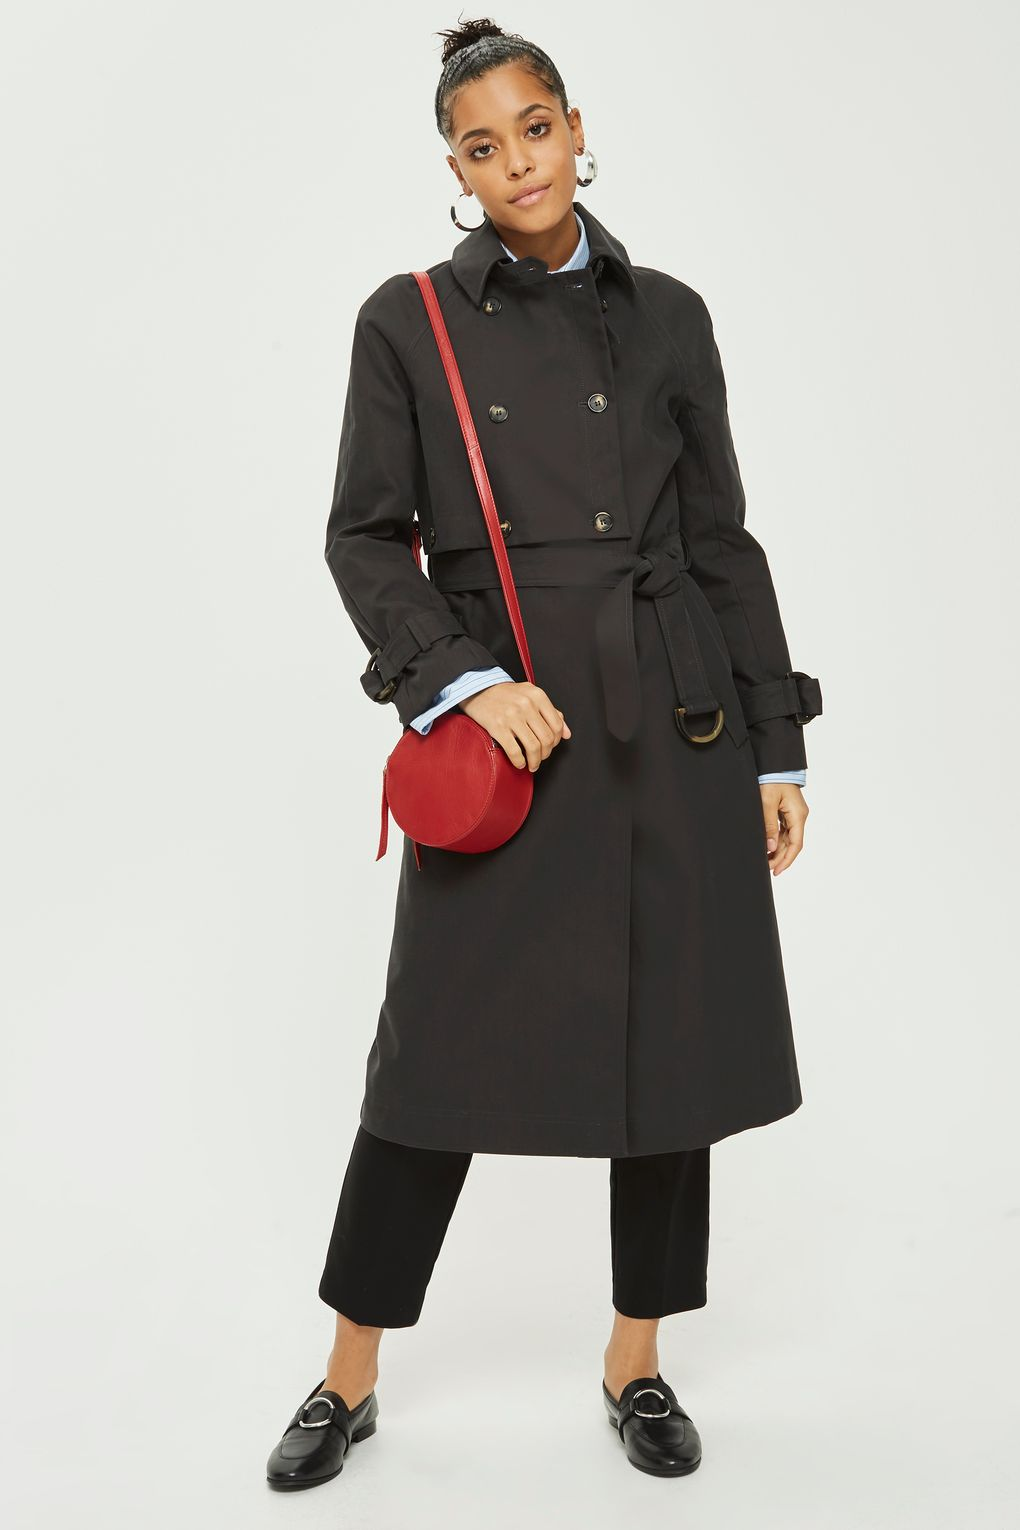 topshop trench black - Style Classics: The Trench Coat